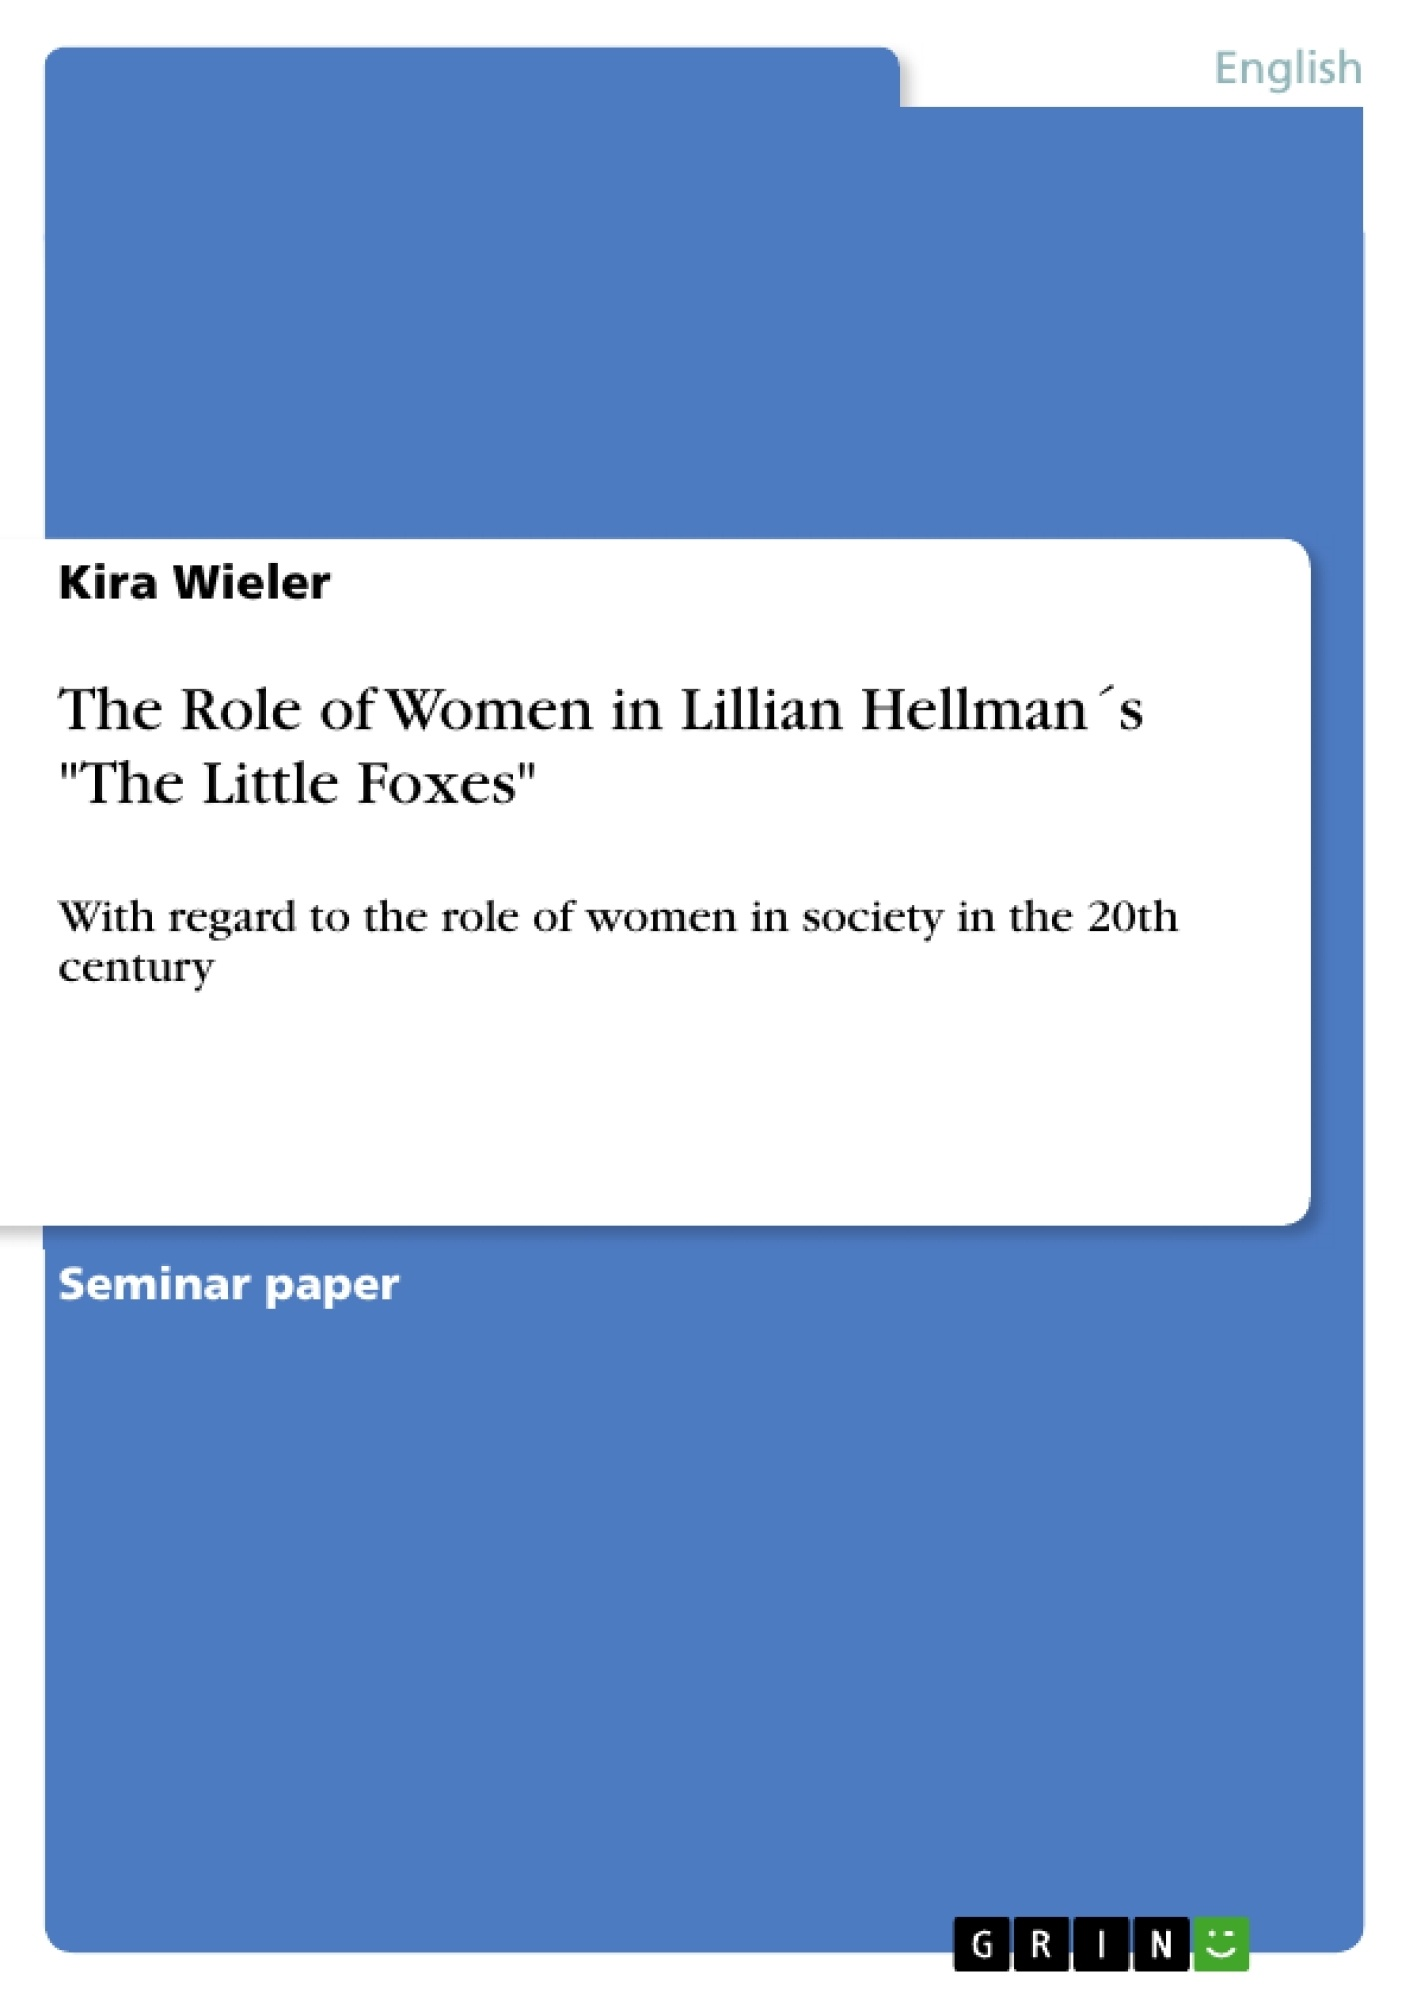 the role of women in lillian hellman acute s the little foxes the role of women in lillian hellmanacutes the little foxes publish your master s thesis bachelor s thesis essay or term paper